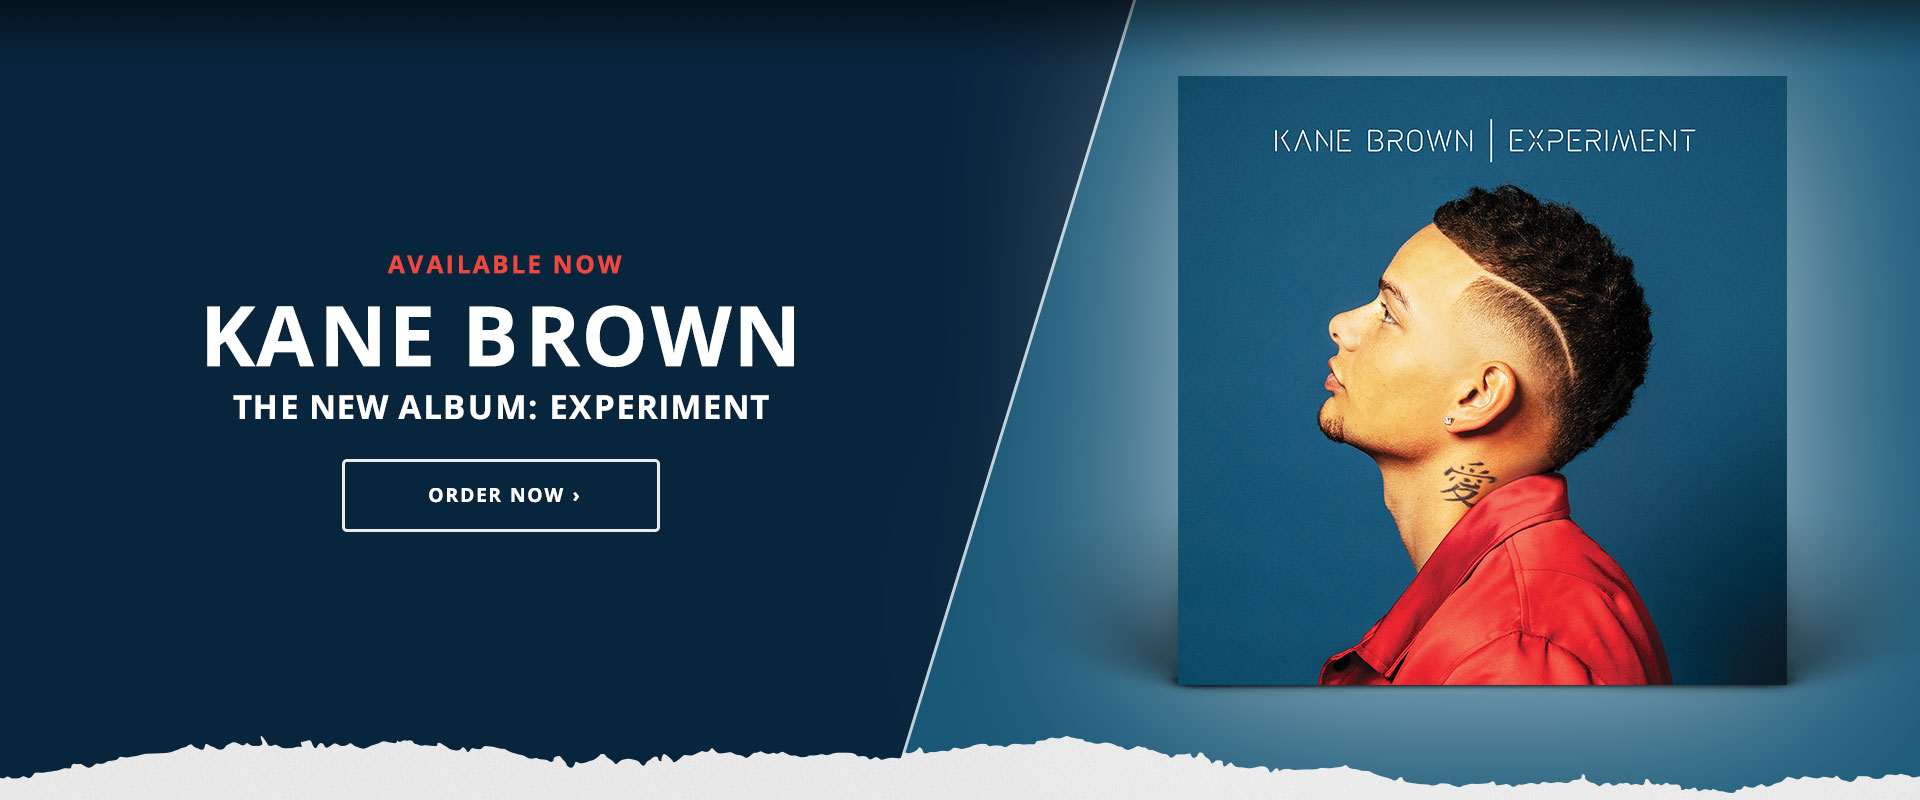 Kane Brown Album Now Available